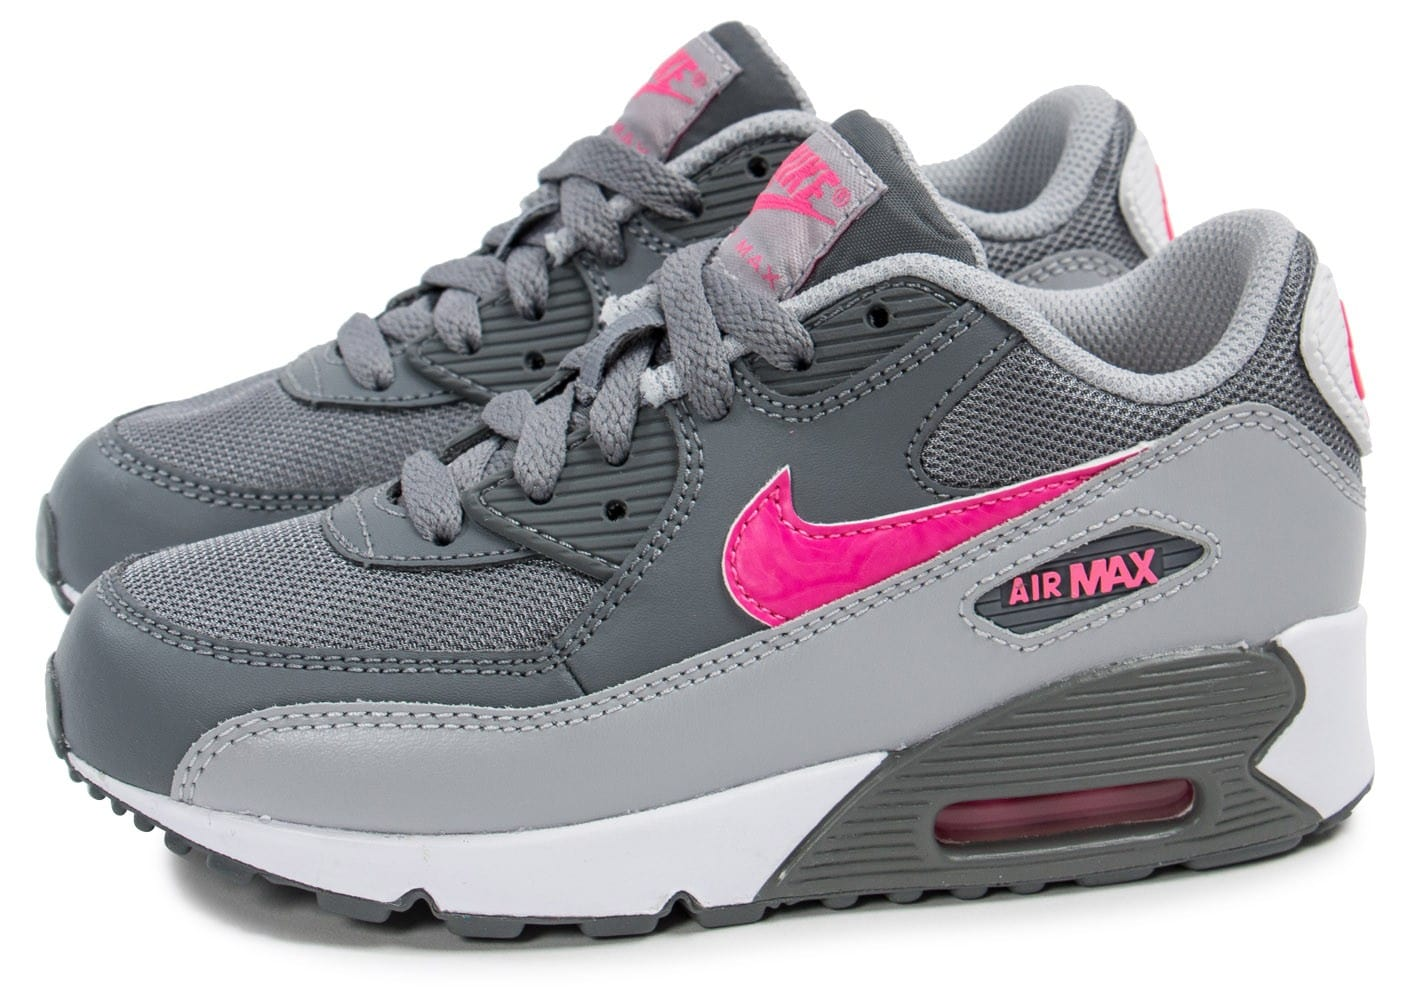 super populaire 2172b 16dc1 sale nike air max gris rose 0a072 fdd25